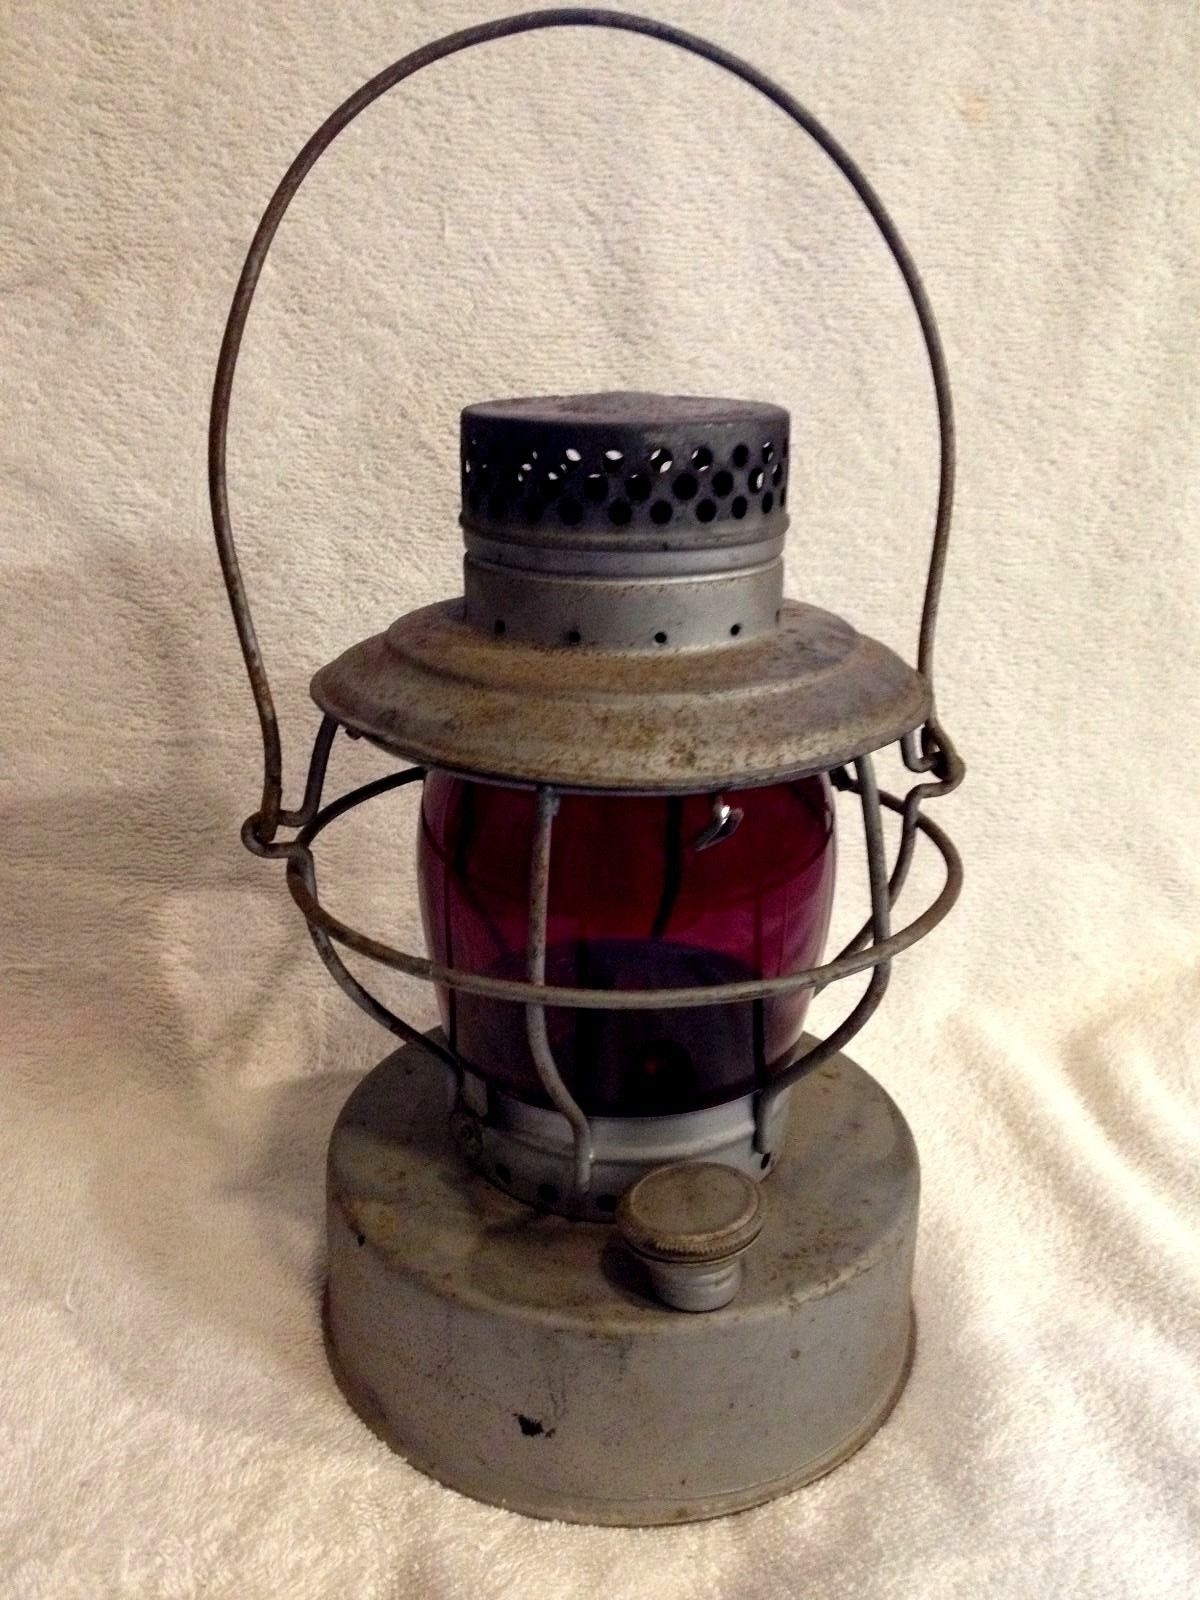 Rr Lamps, Lanterns Throughout Outdoor Railroad Lanterns (View 17 of 20)